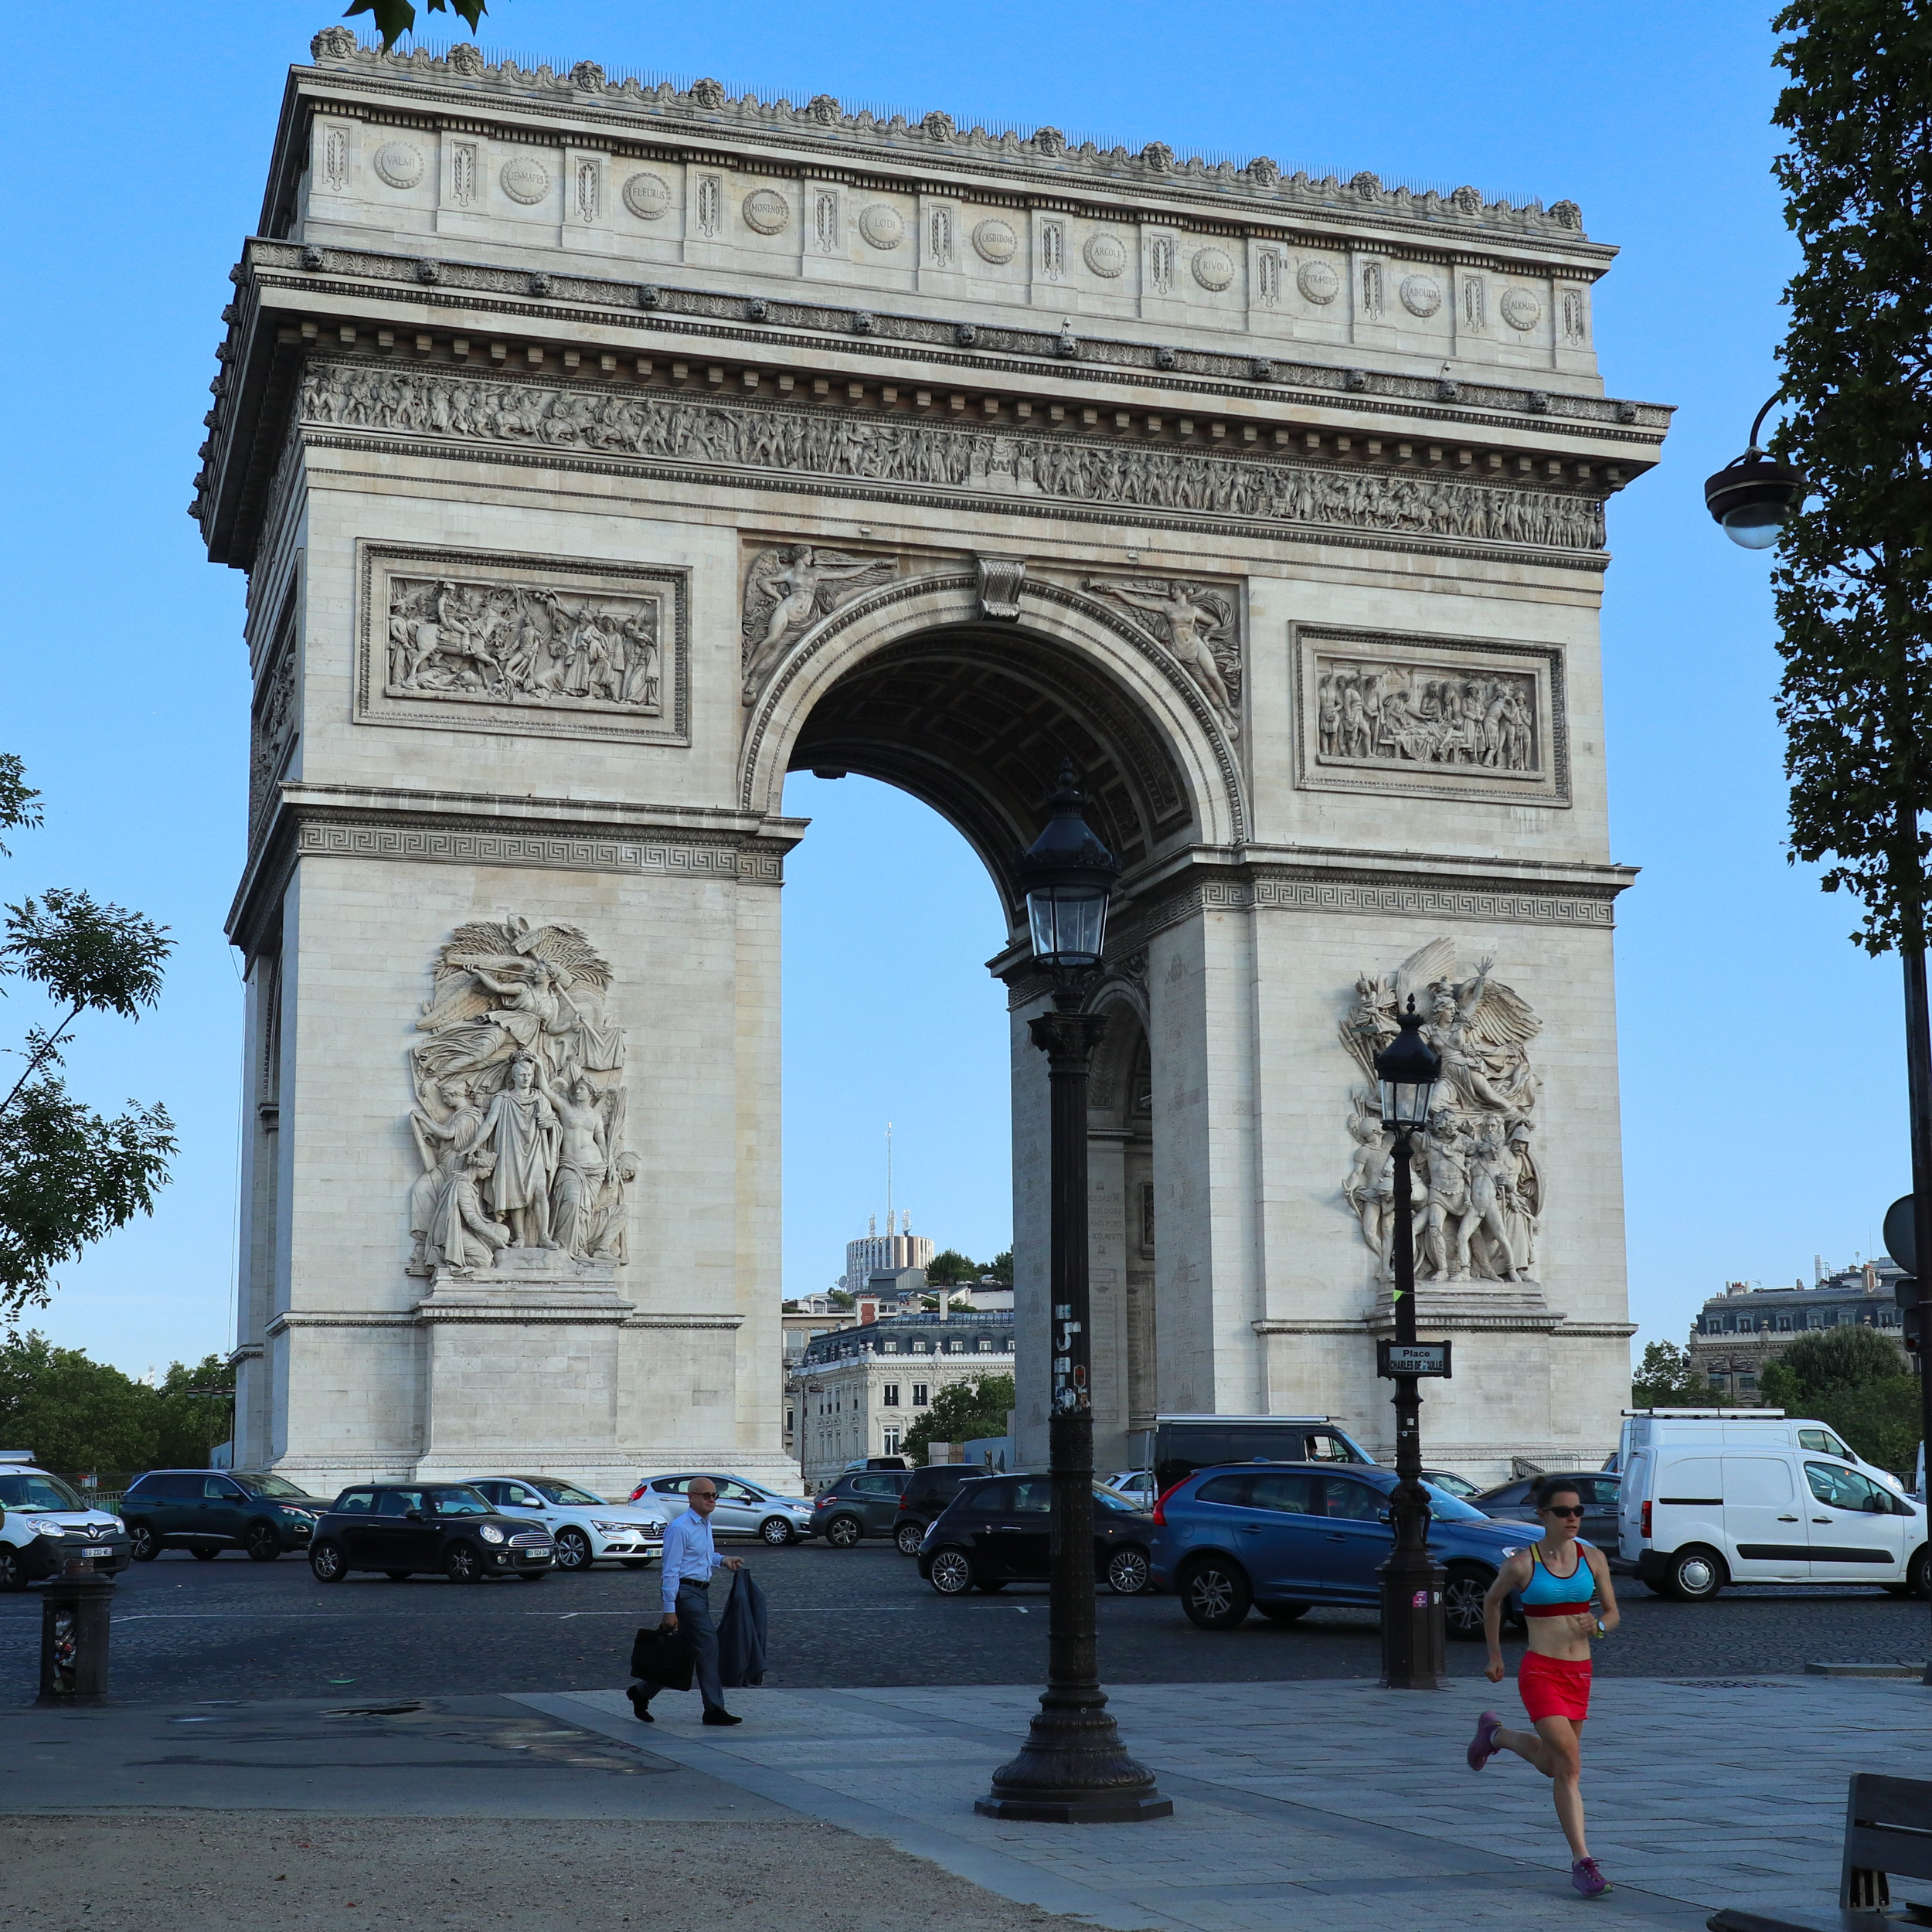 Trying not to get hit by traffic at the Arc de Triomphe.